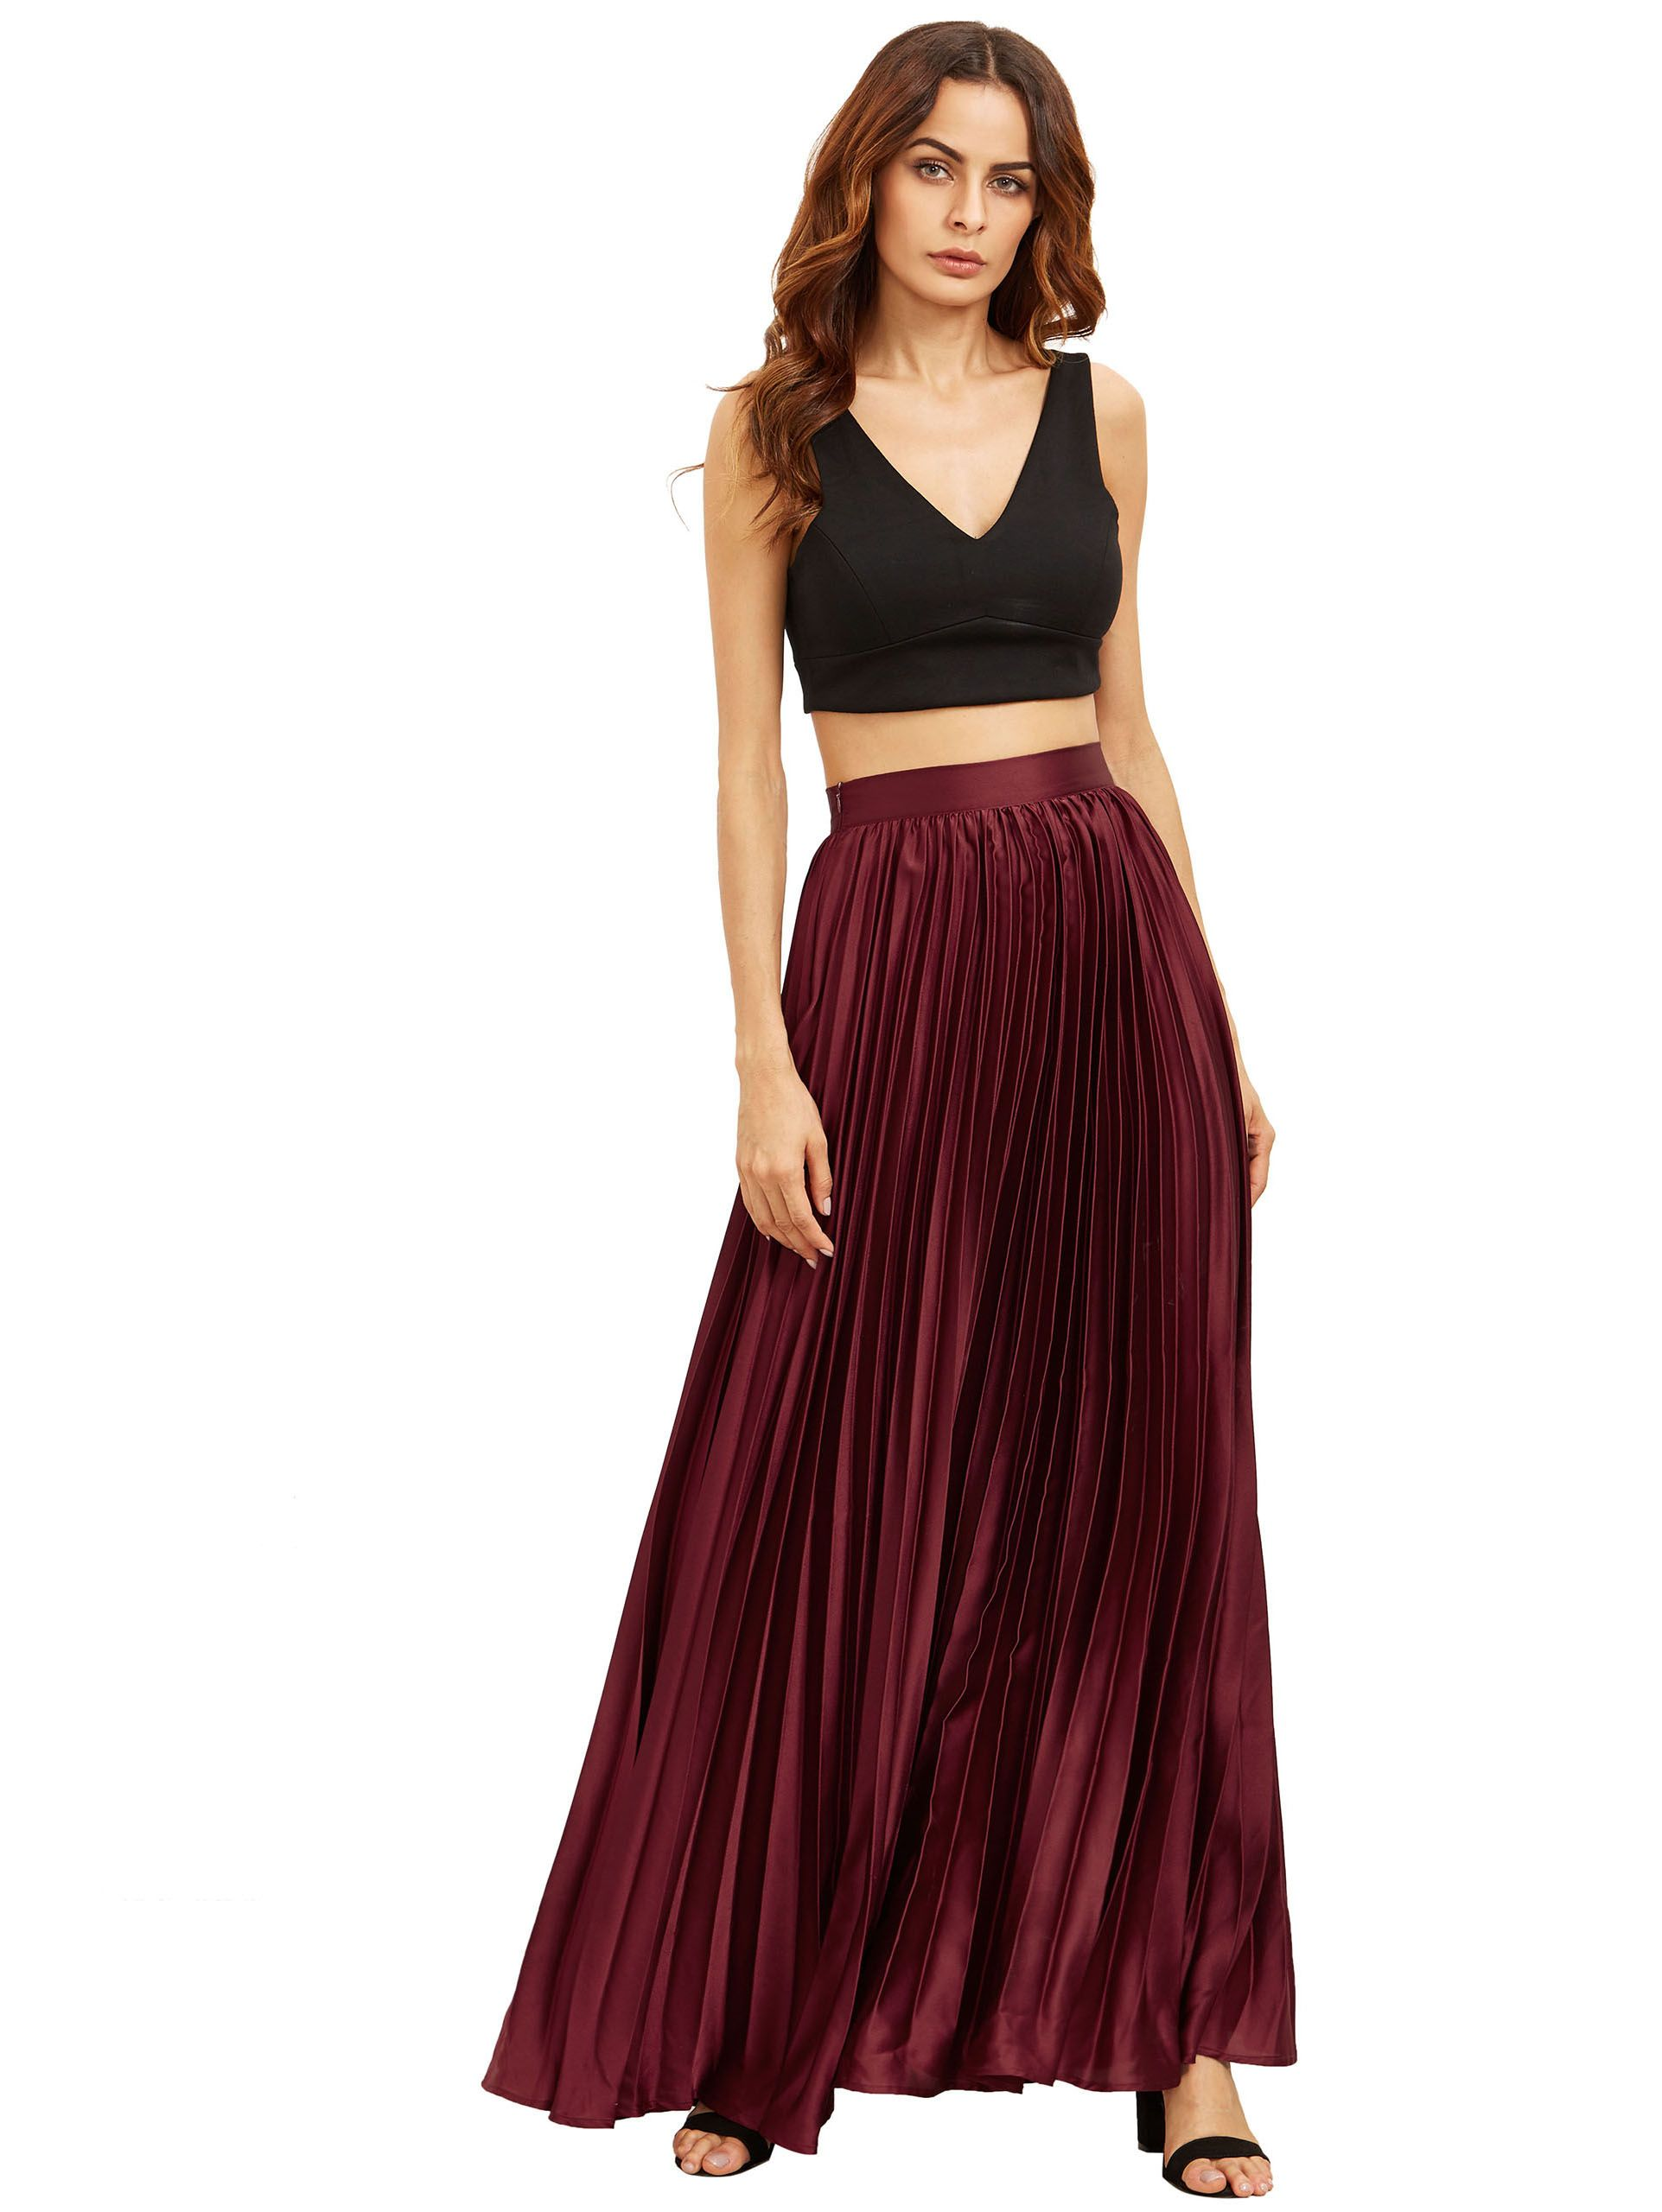 b06b3e90a7d7ee Shop Burgundy Zipper Side Pleated Flare Maxi Skirt online. SheIn offers  Burgundy Zipper Side Pleated Flare Maxi Skirt & more to fit your  fashionable needs.